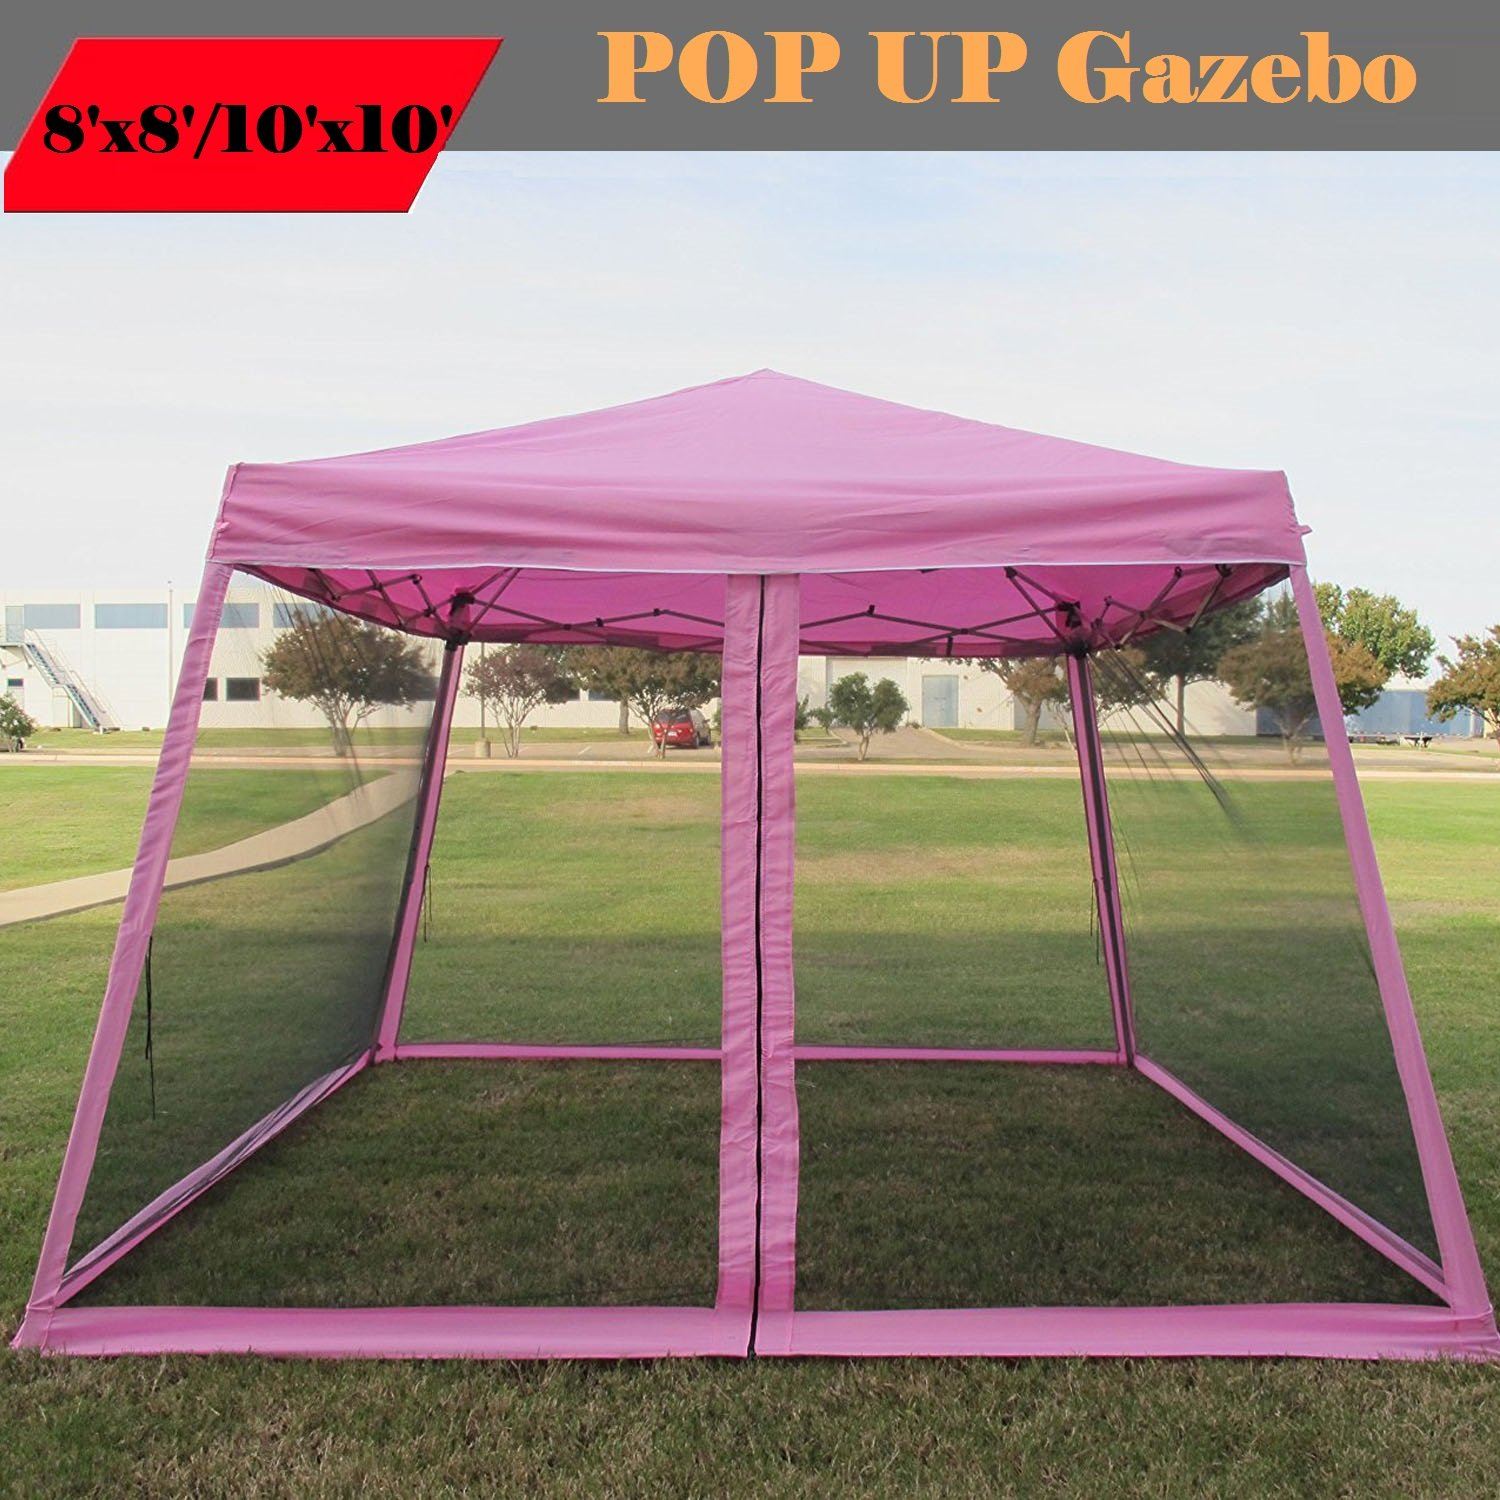 Amazon.com  8u0027x8u0027/10u0027x10u0027 Pop up Canopy Party Tent Gazebo Ez with Net (Pink)  Family Tents  Garden u0026 Outdoor & Amazon.com : 8u0027x8u0027/10u0027x10u0027 Pop up Canopy Party Tent Gazebo Ez with ...